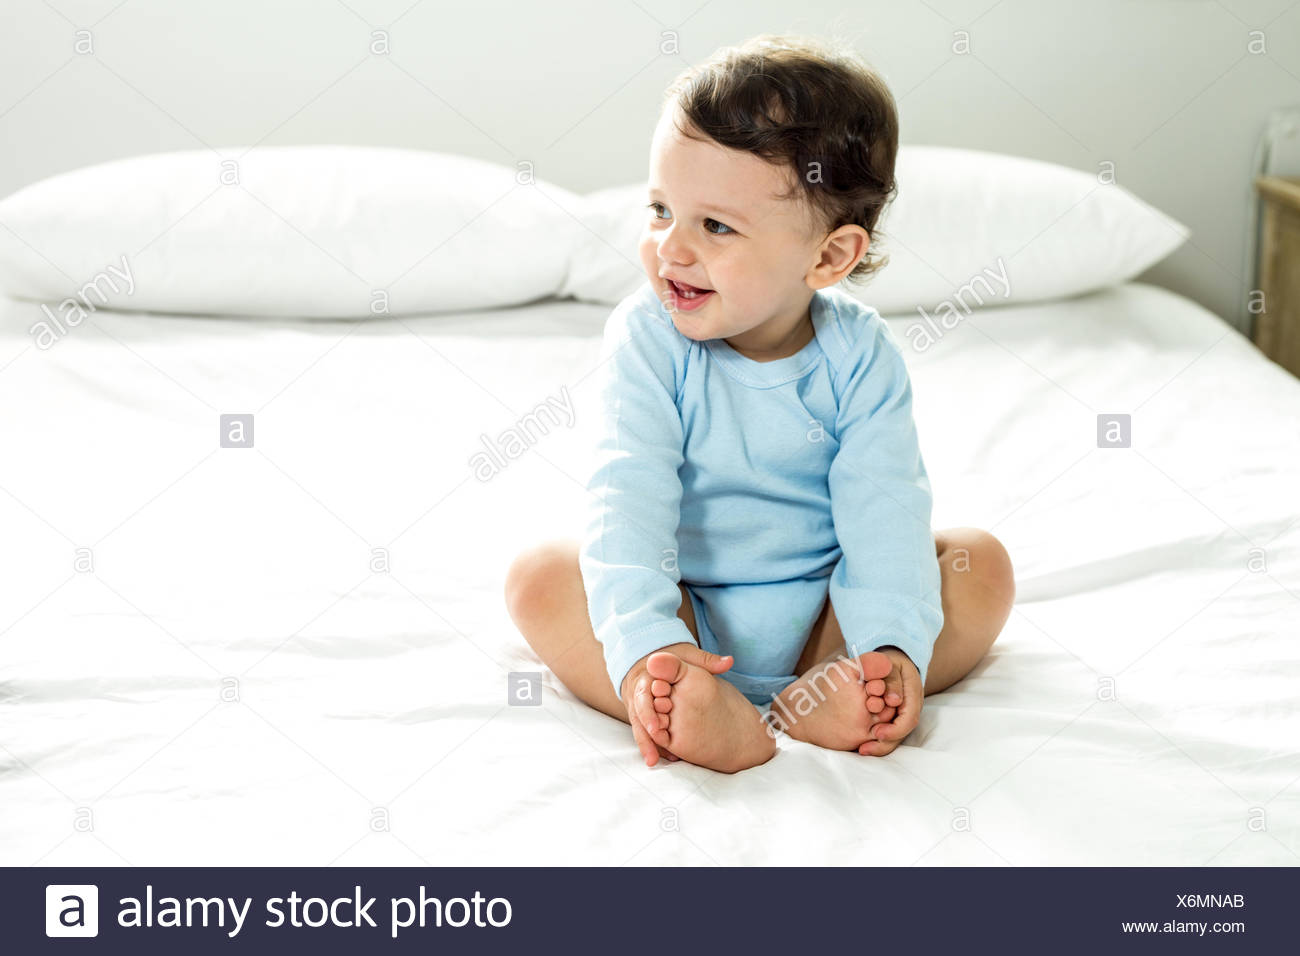 Baby boy smiling while sitting on bed at home - Stock Image